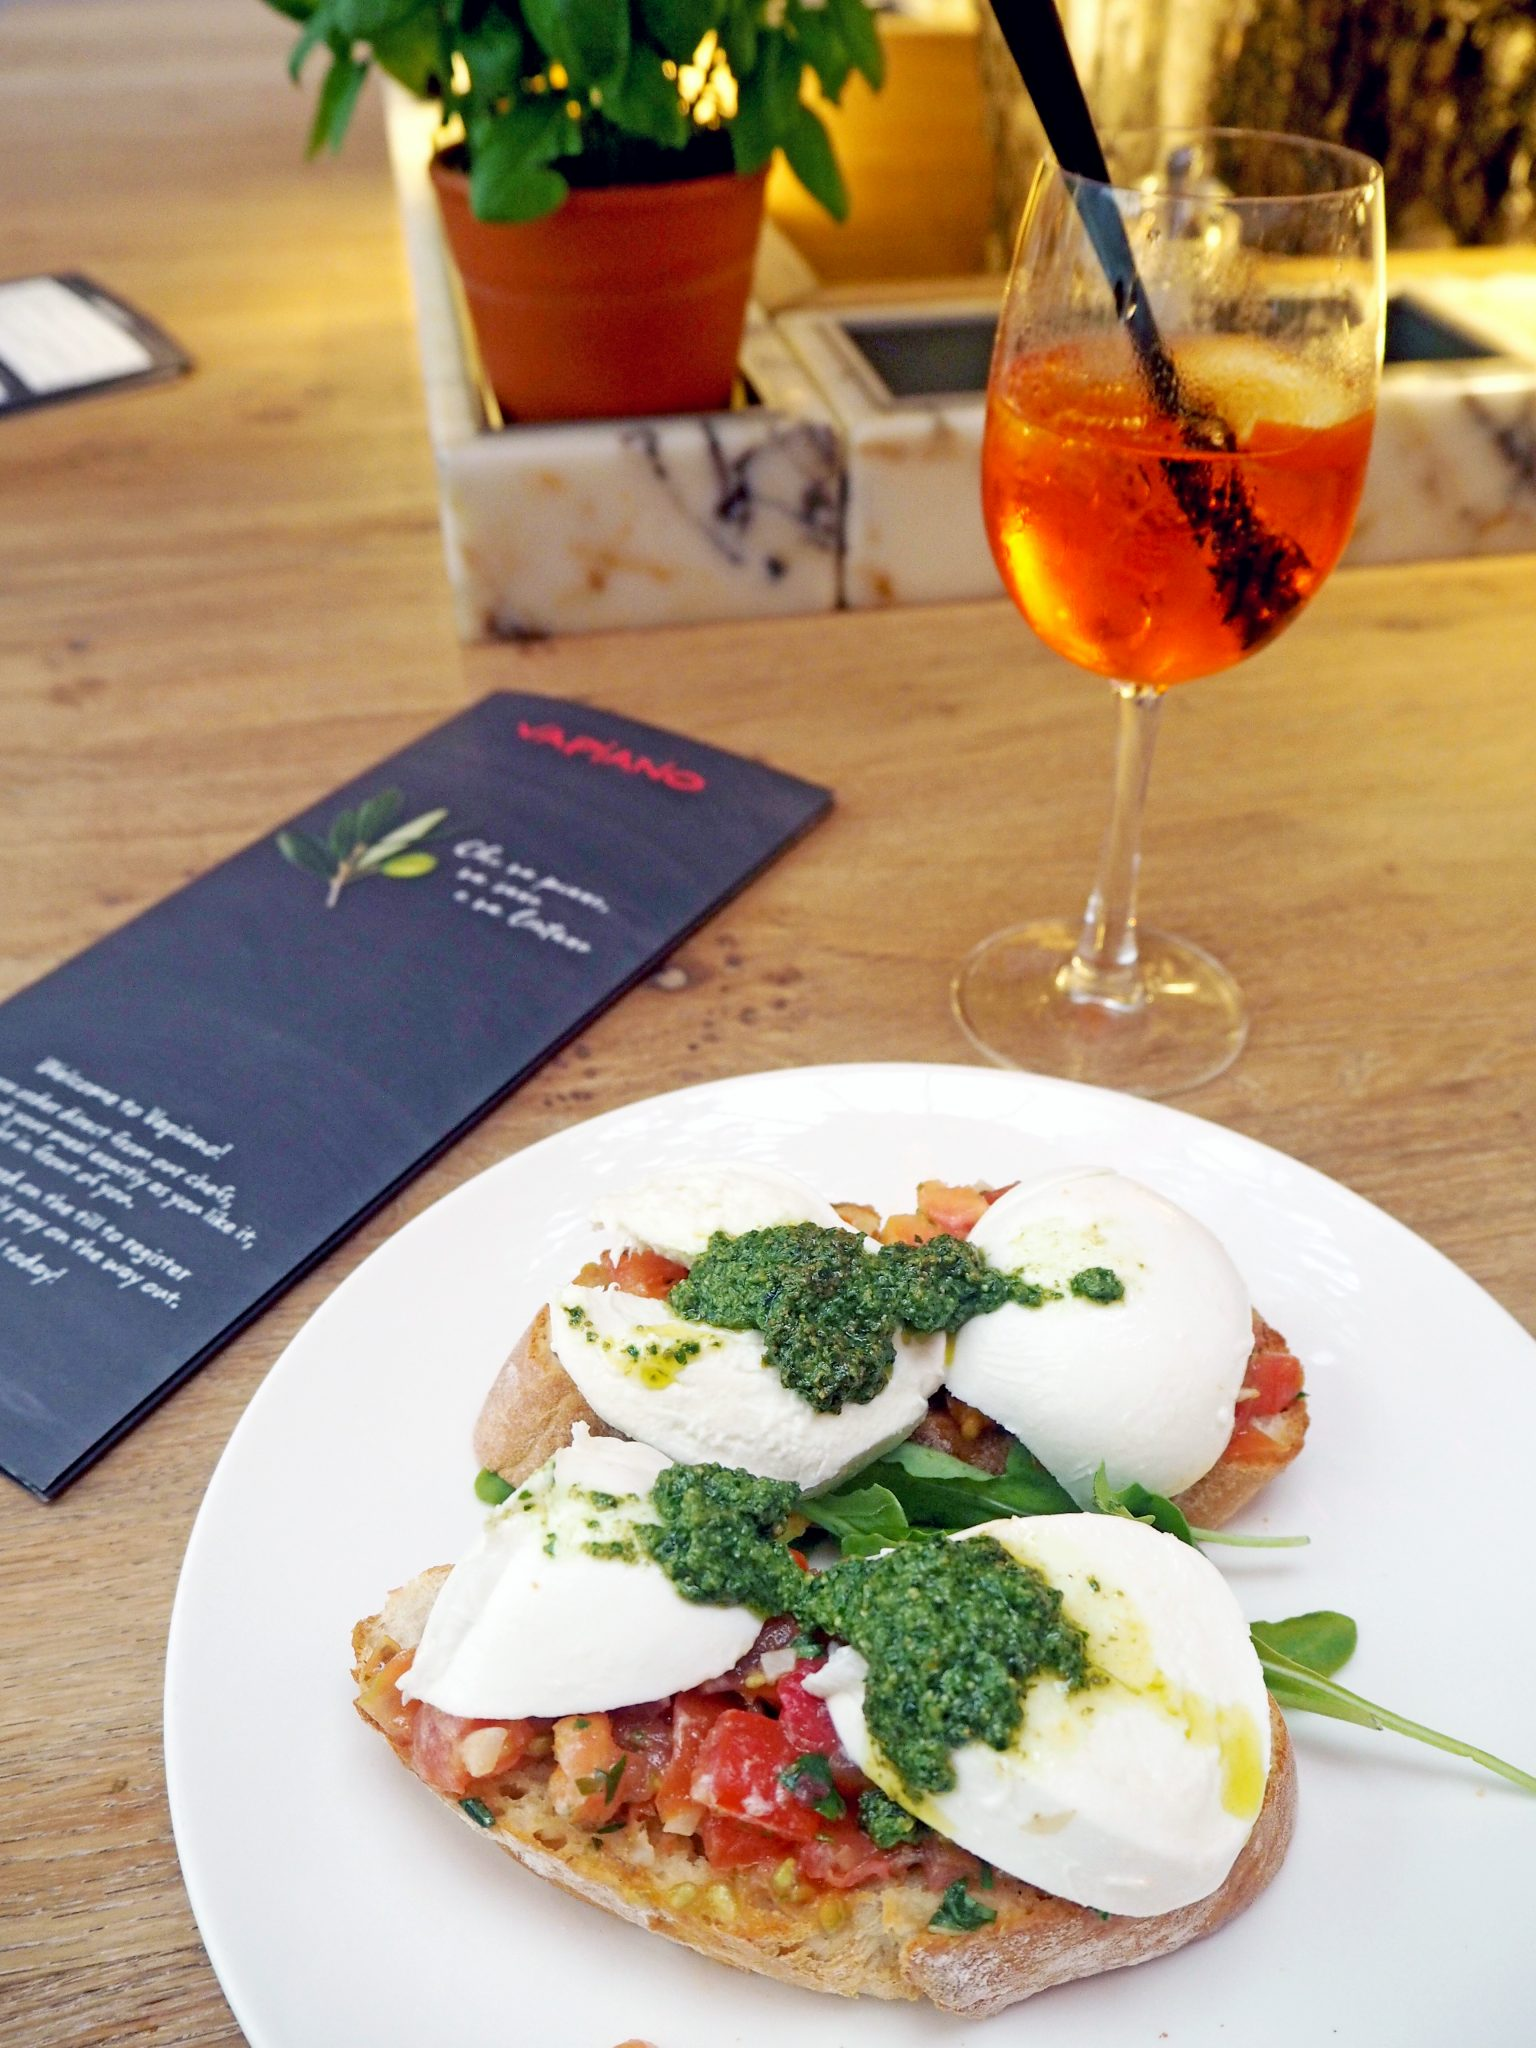 Laura Kate Lucas - Manchester Food, Fashion and Lifestyle Blogger | Vapiano Italian Restaurant Review